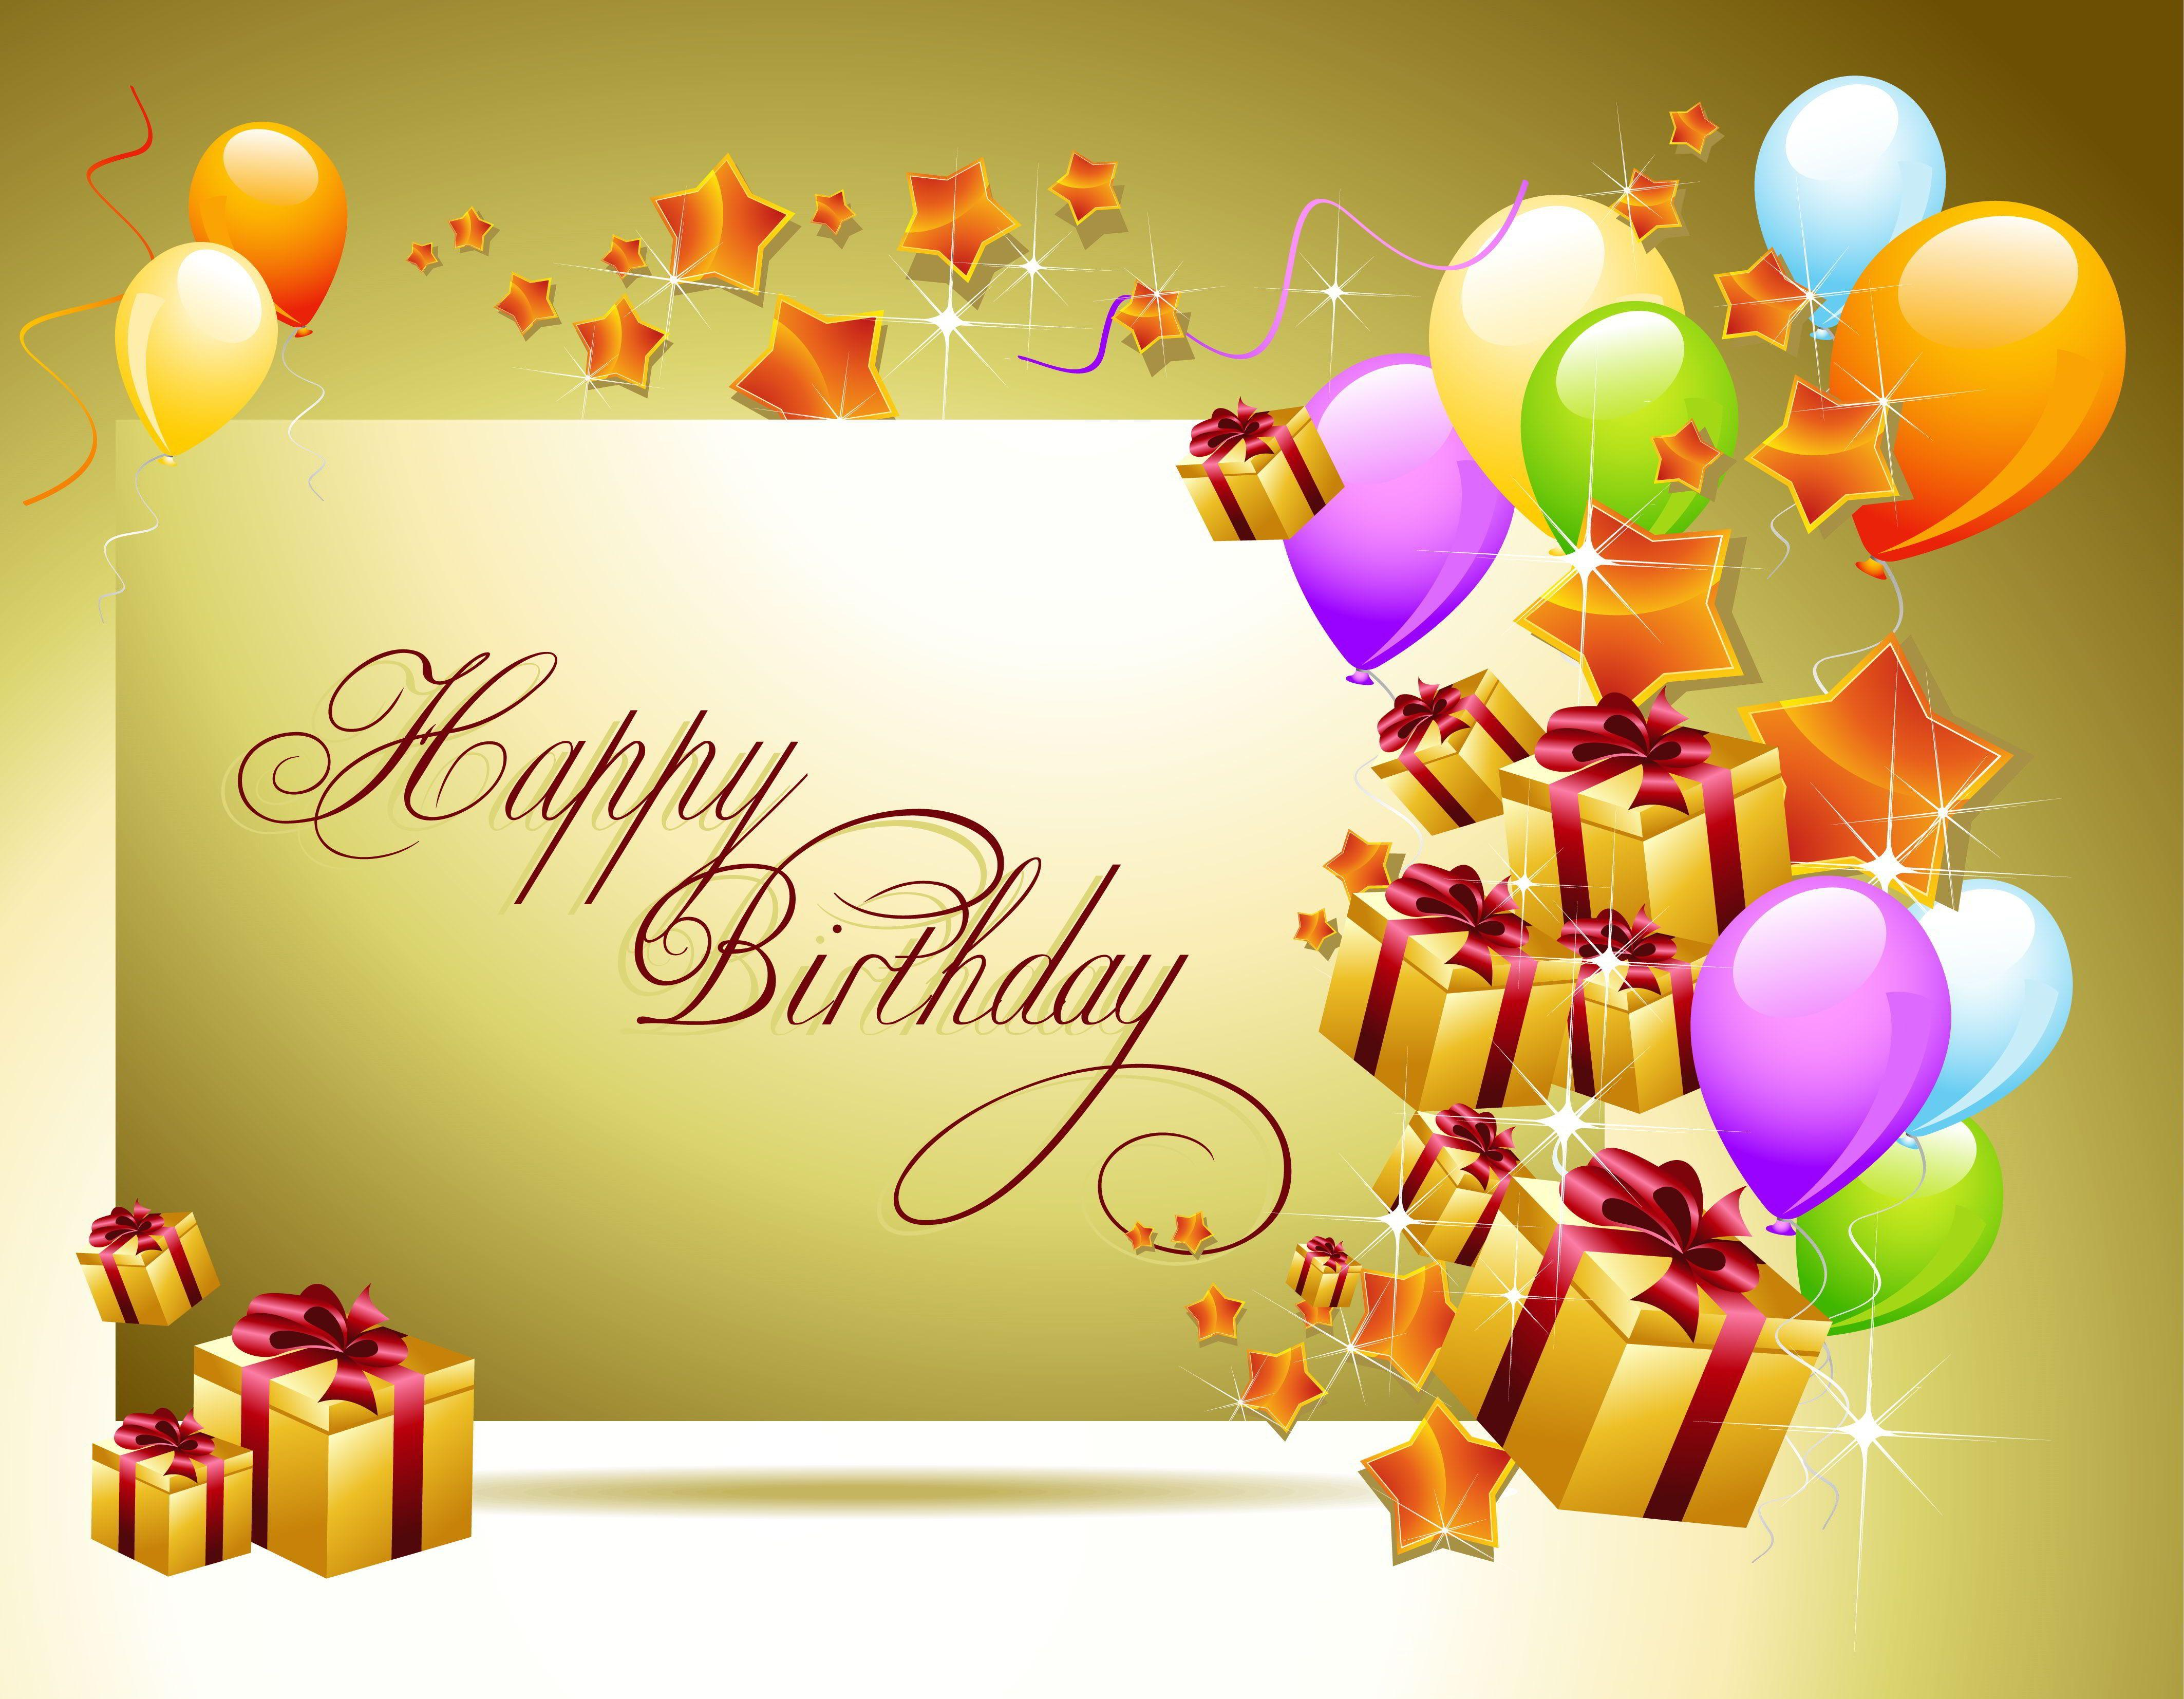 Exclusive happy birthday wishes messages with HD image